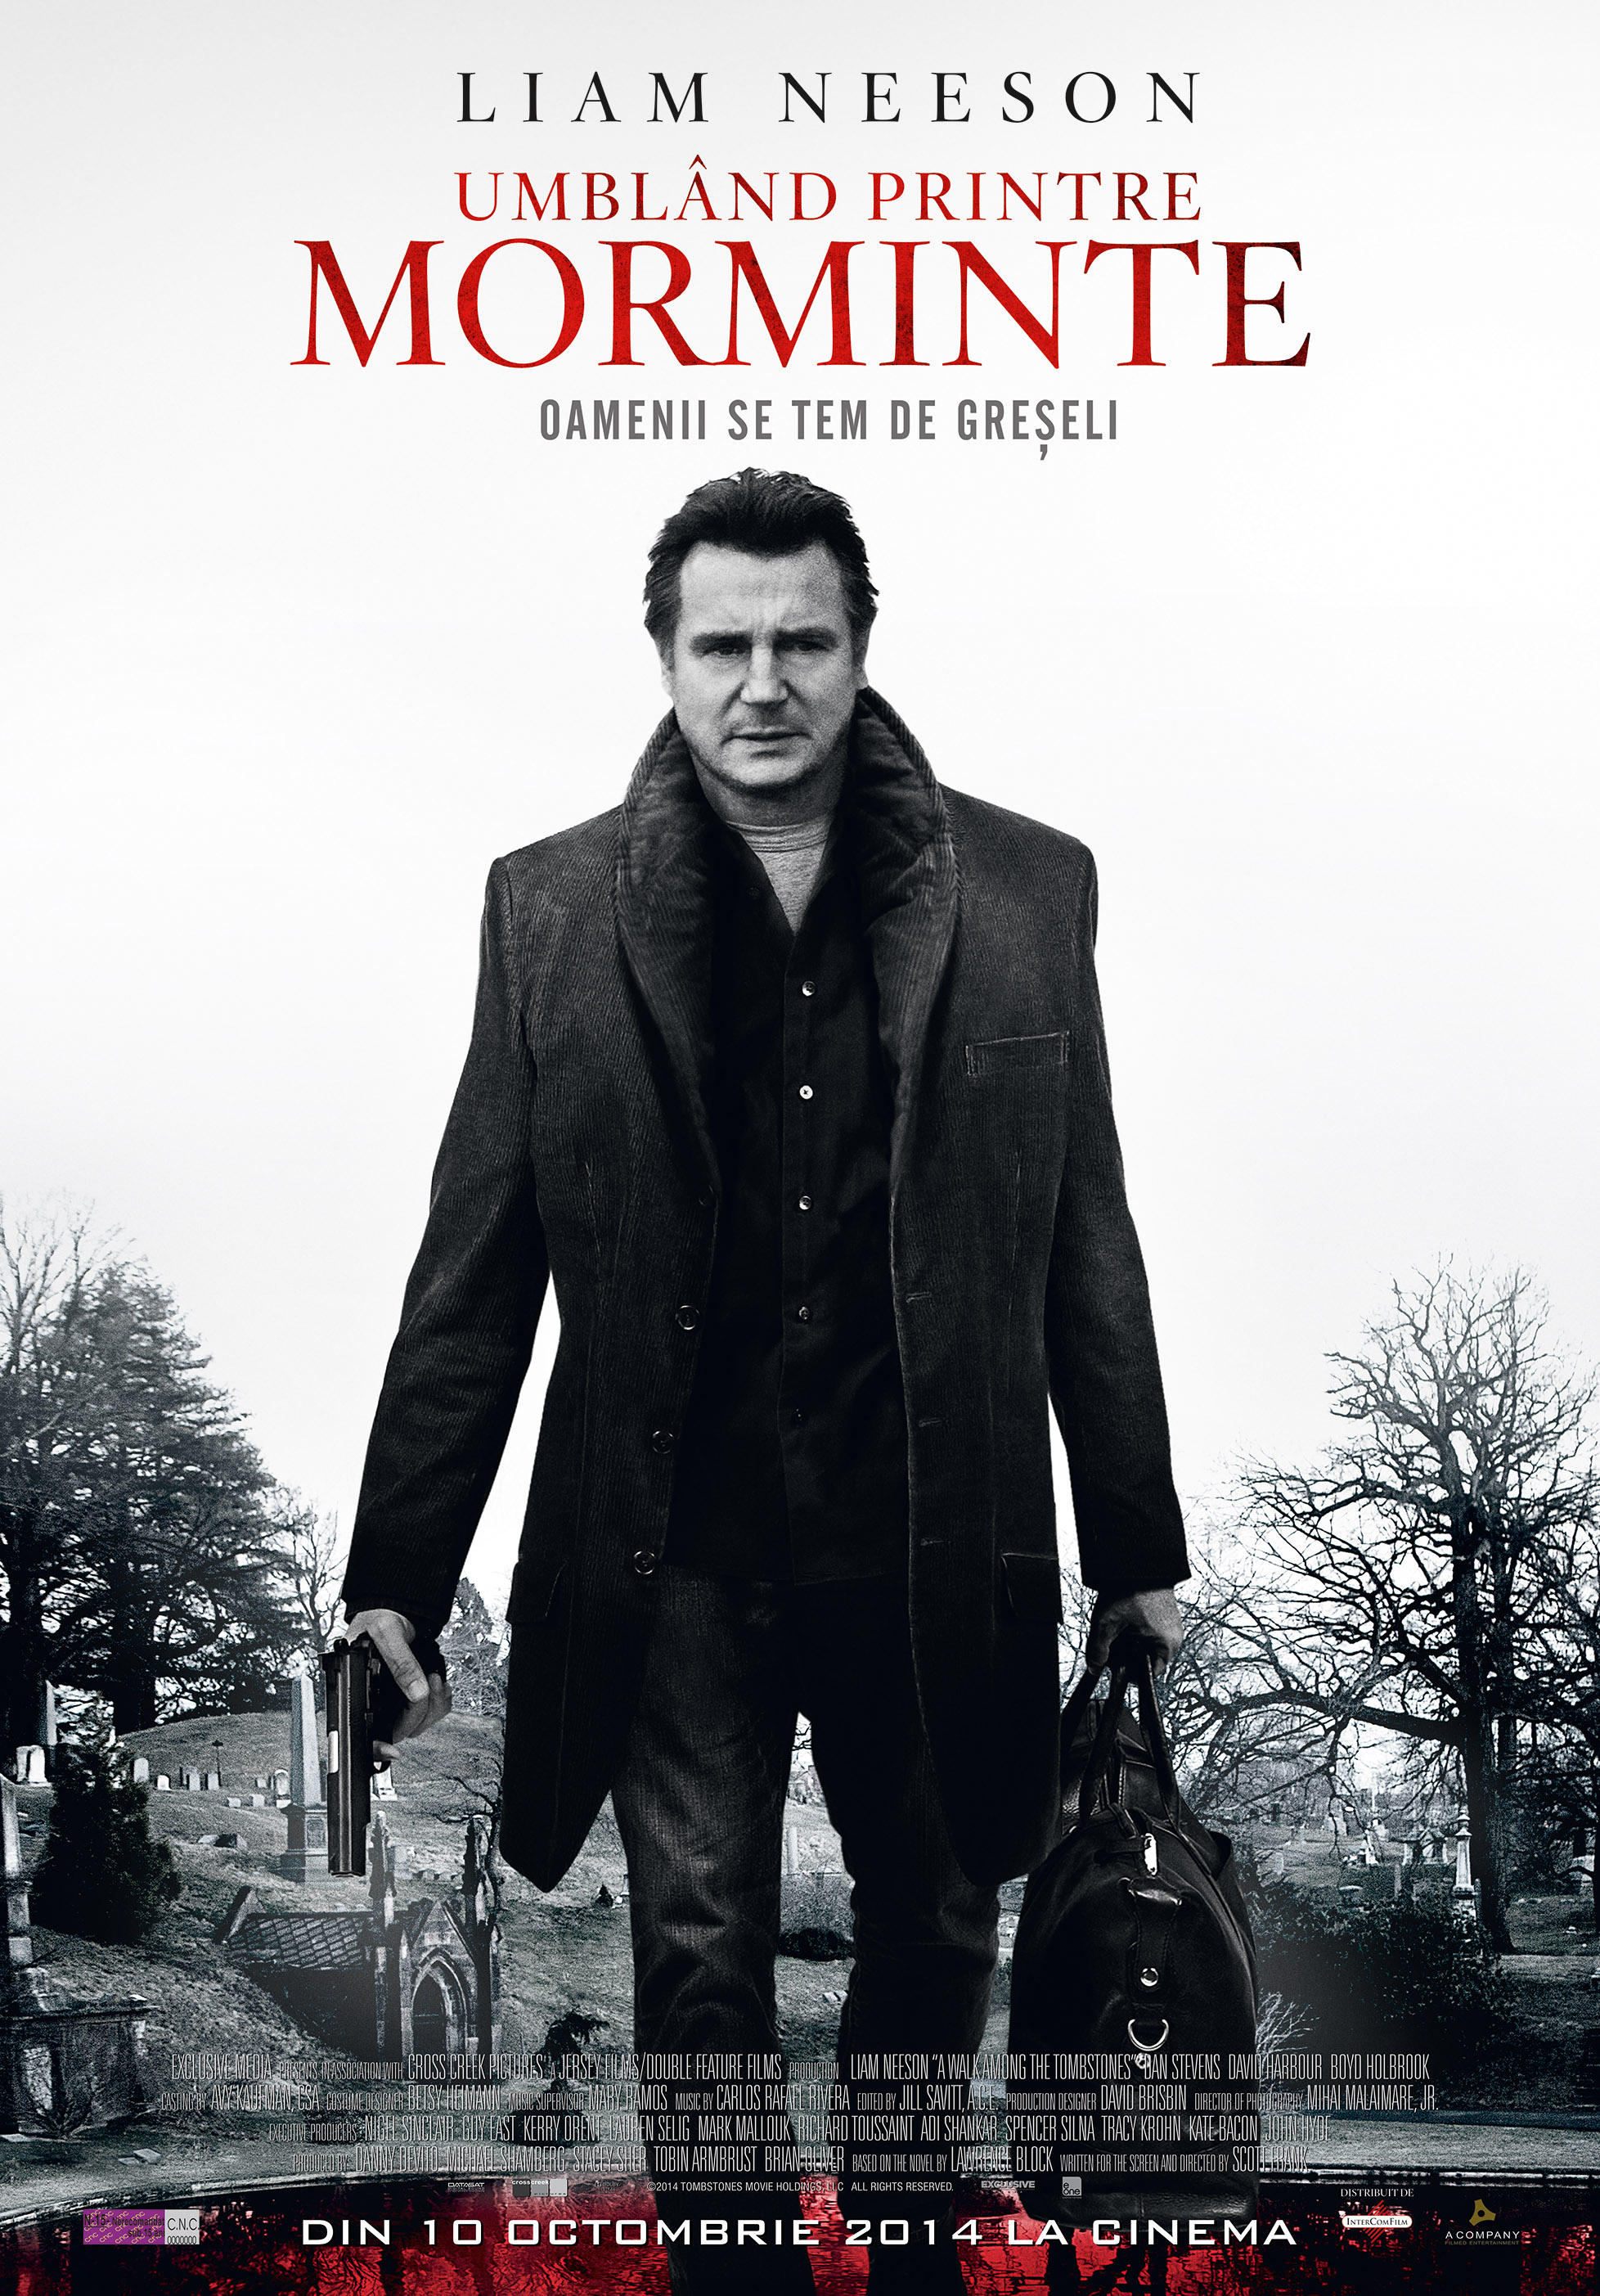 Umbland printre morminte / A Walk Among the Tombstones (Premiera)